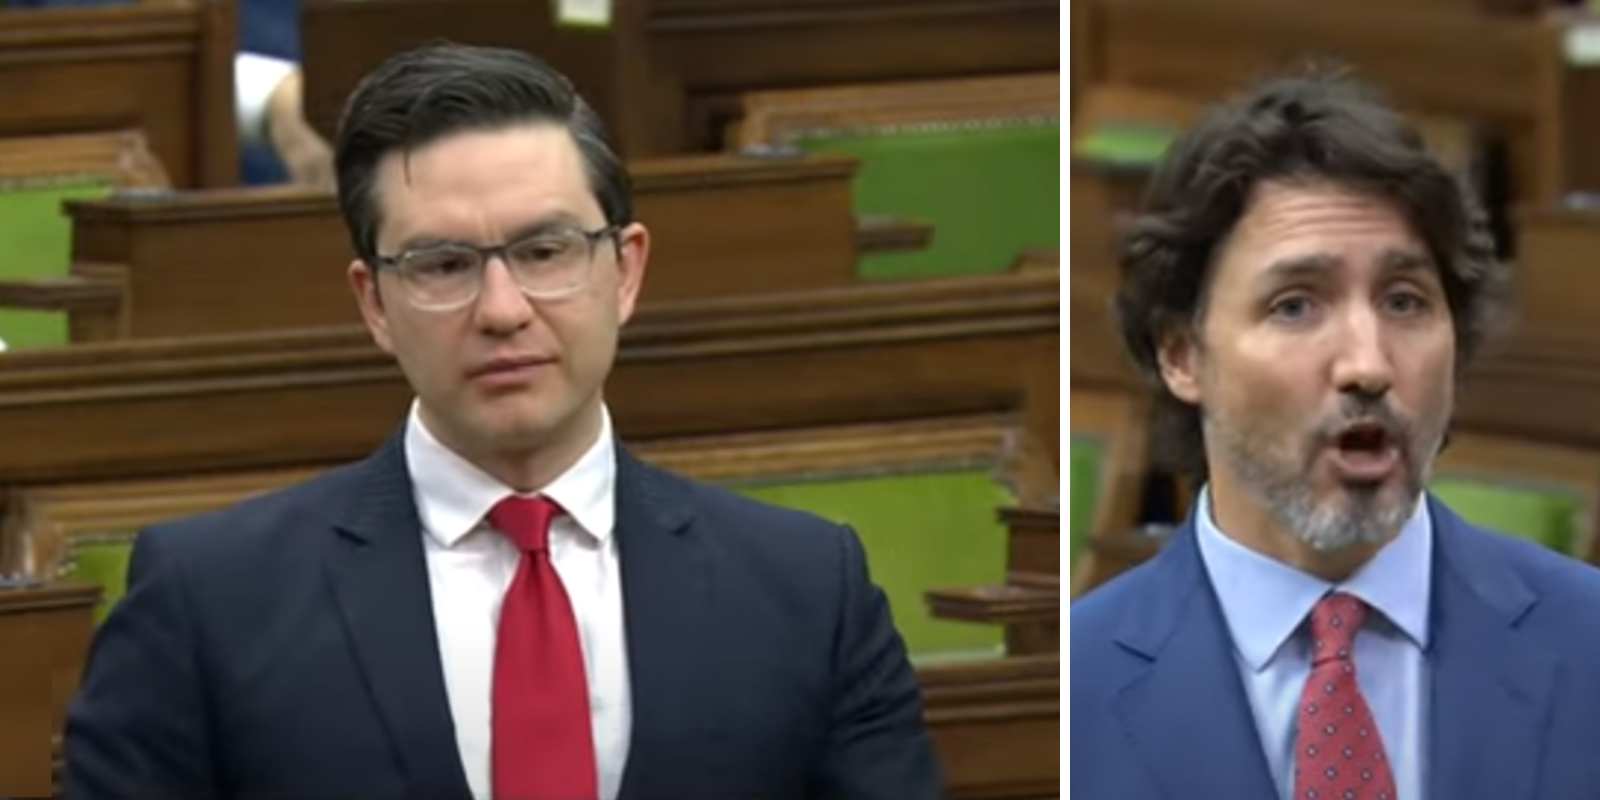 WATCH: Trudeau says Poilievre is one of 'many Canadians who lost their jobs during the pandemic'